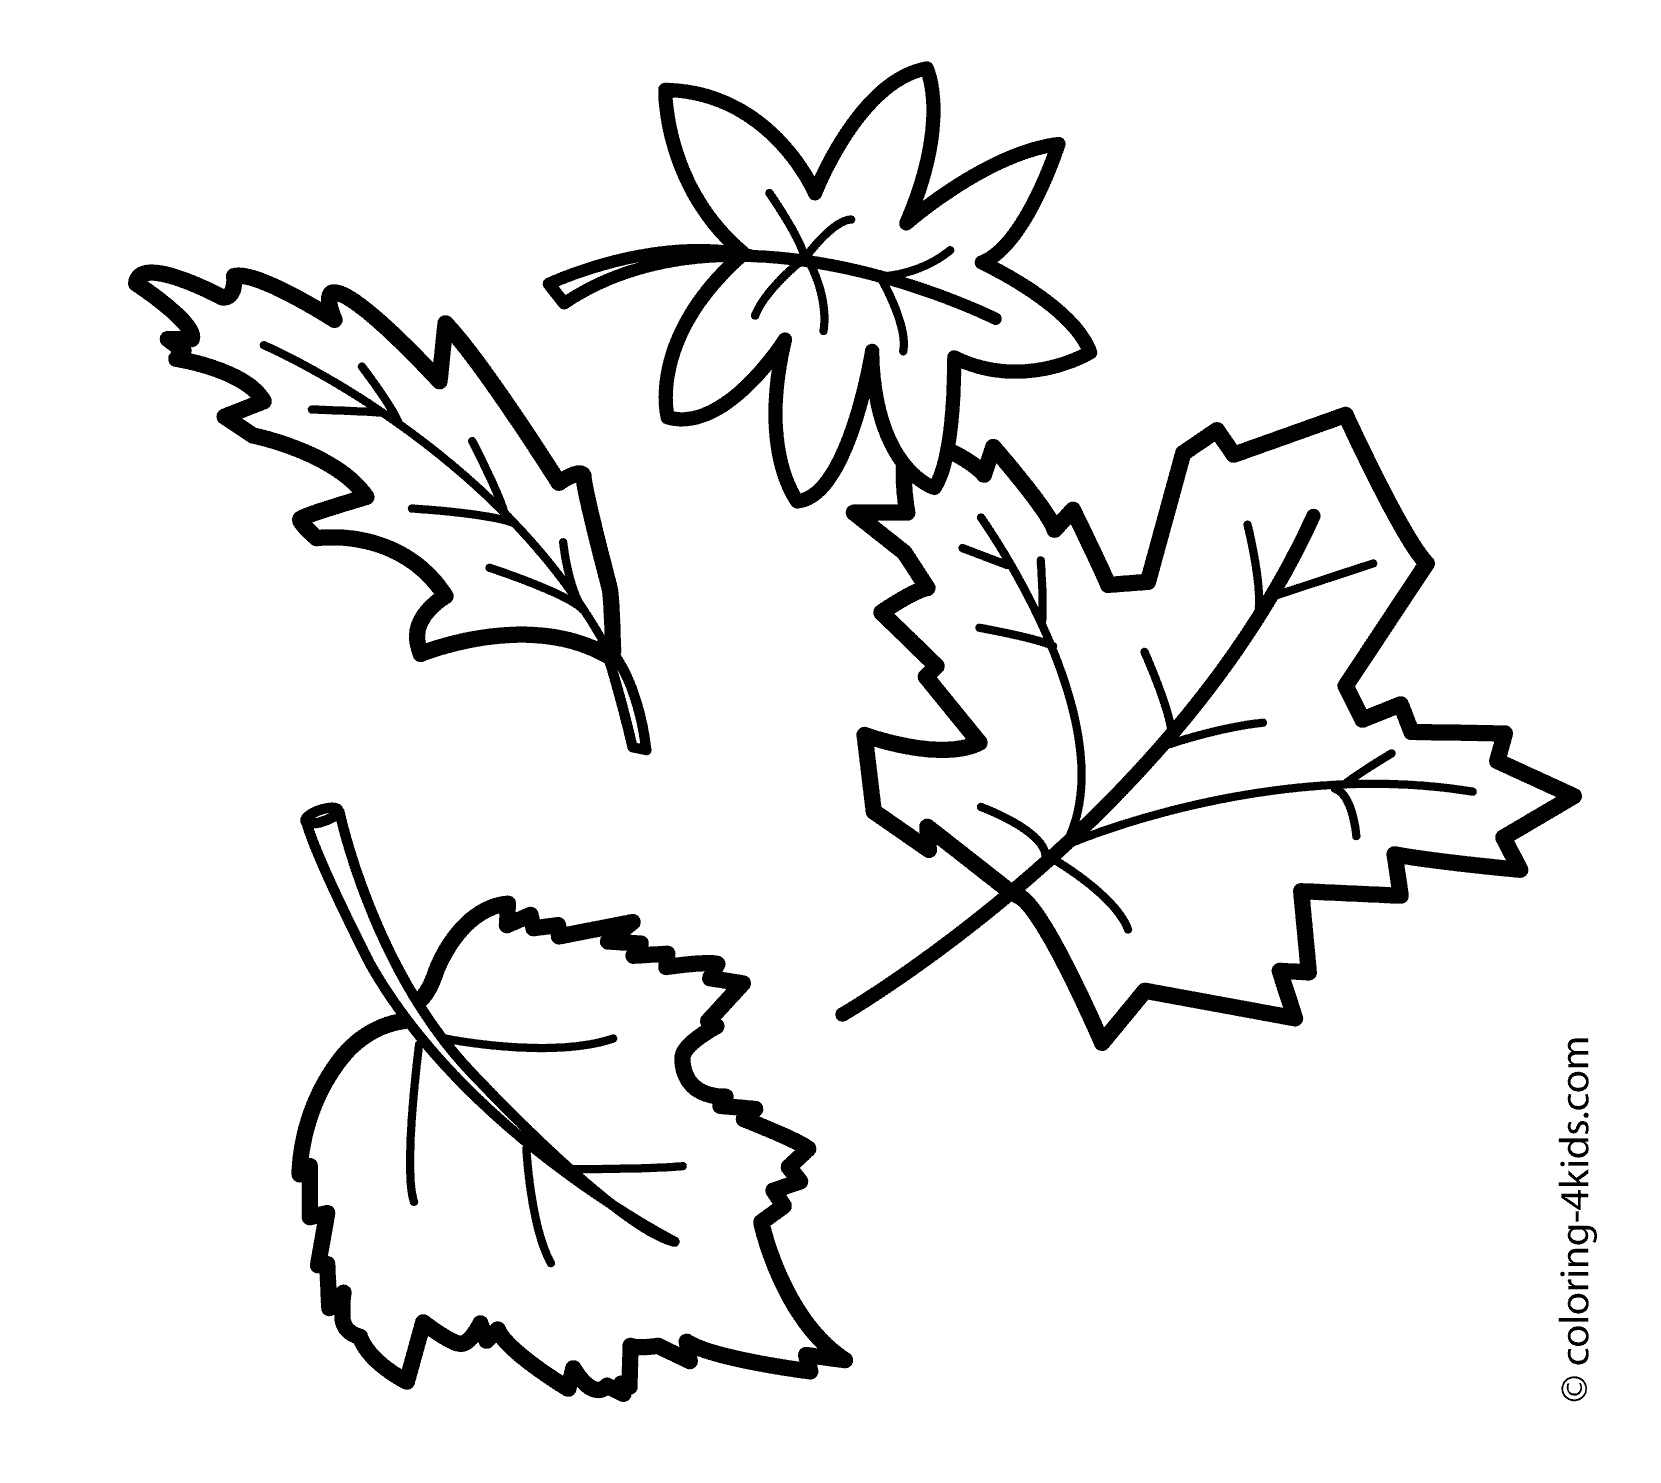 1661x1483 Insider Leaves Coloring Sheet This Maple Leaf Page Features